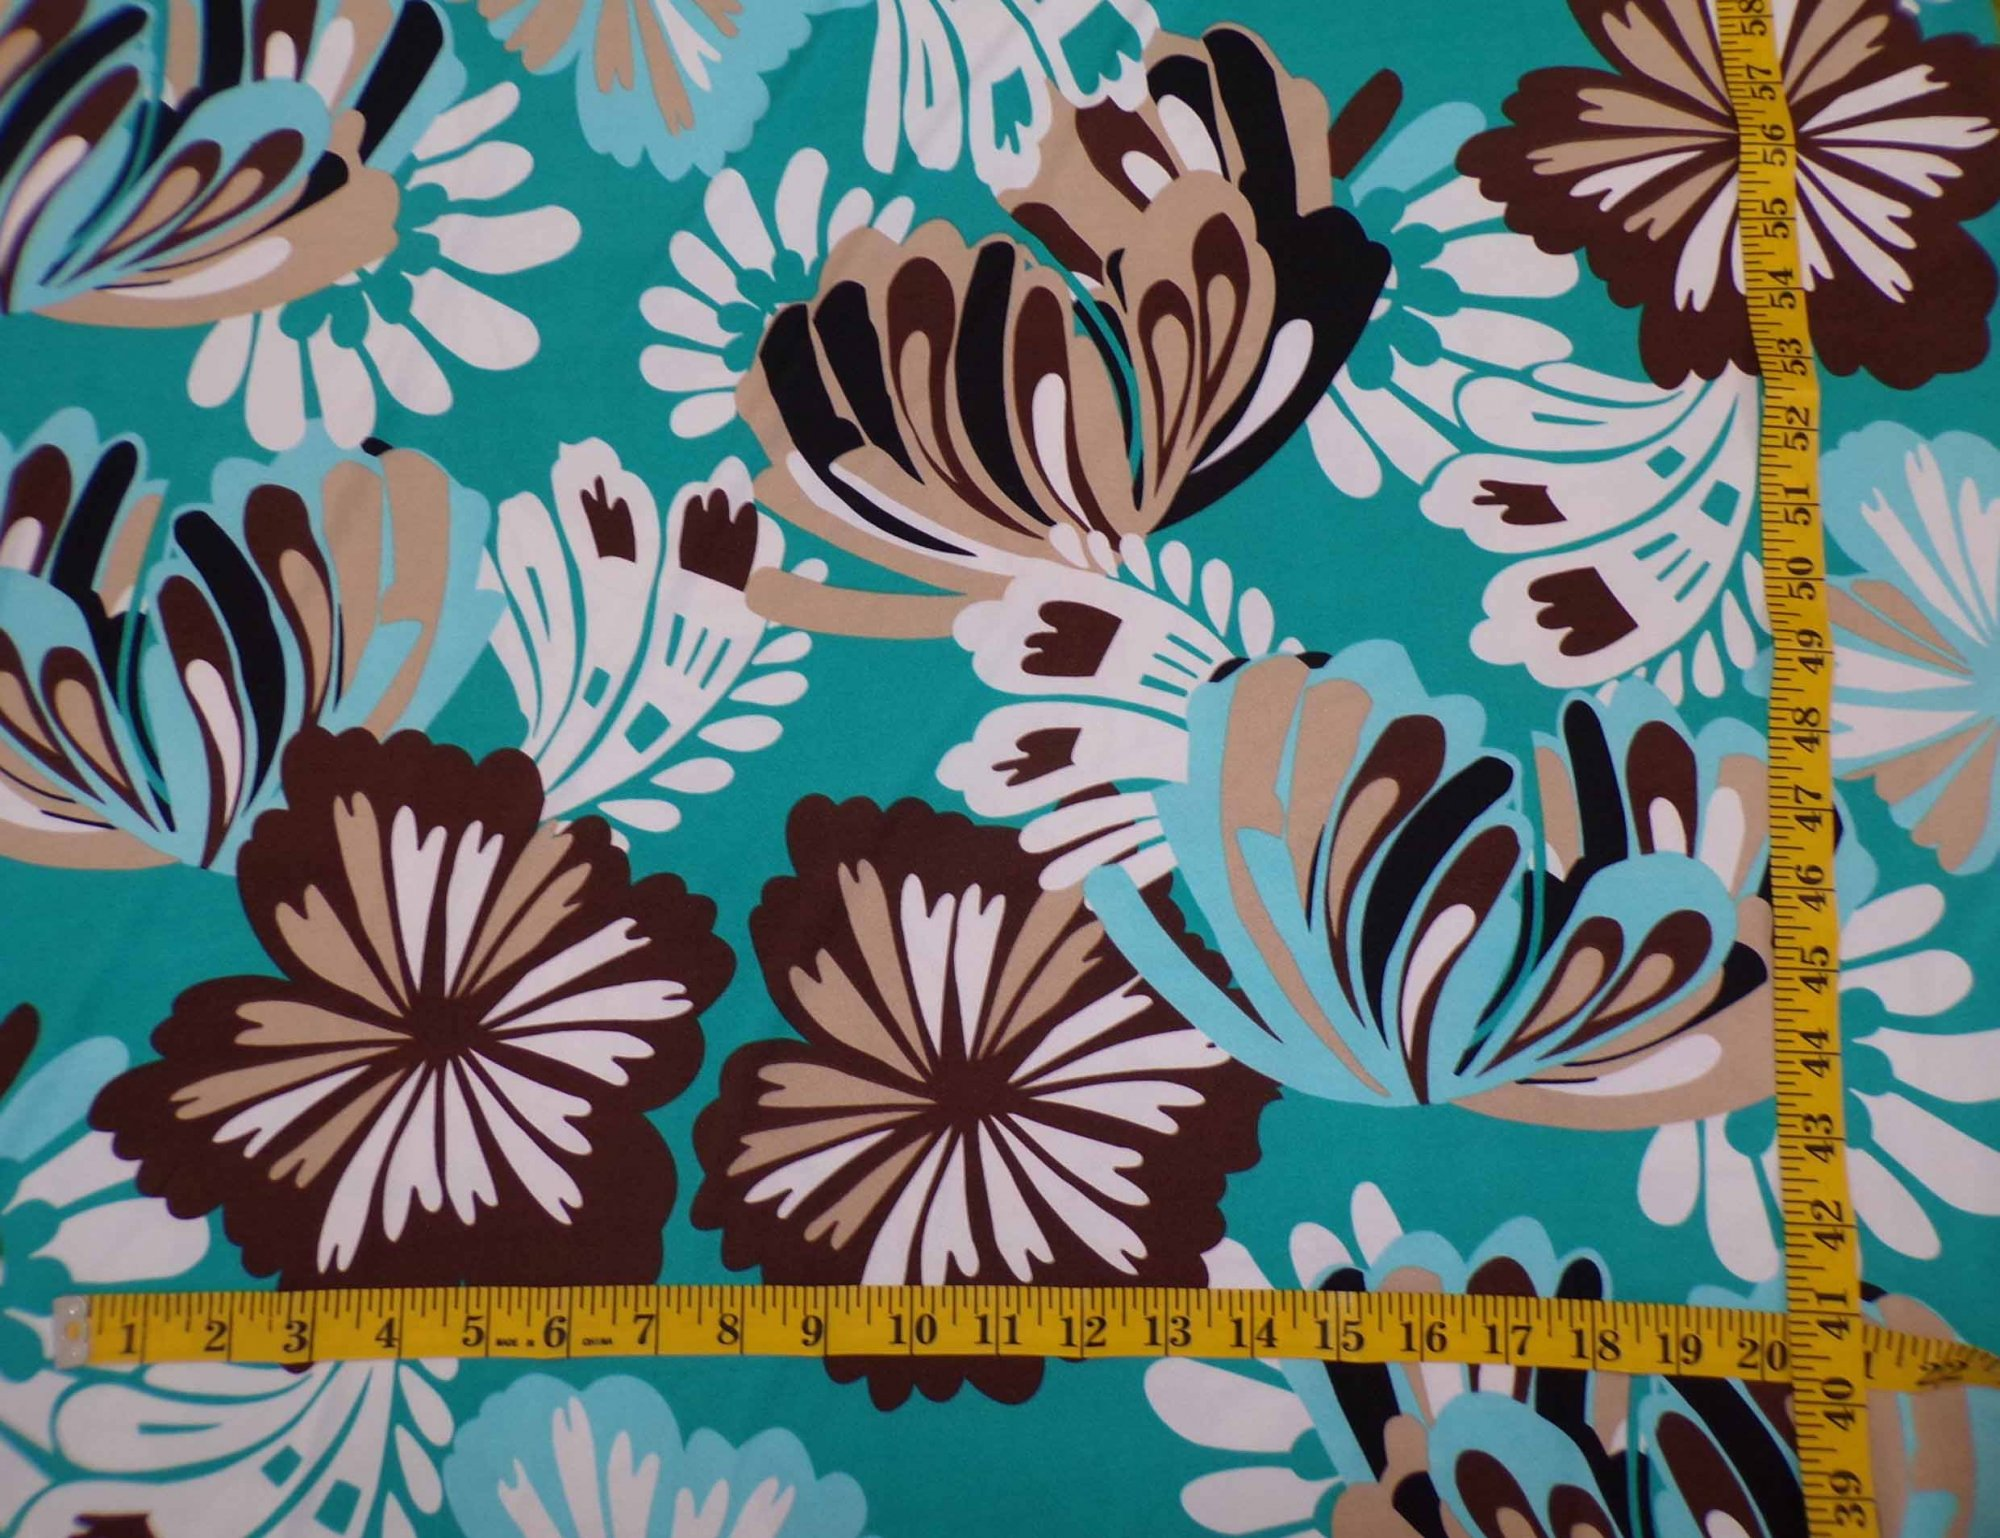 ITY Jersey - Teal and Tan Floral